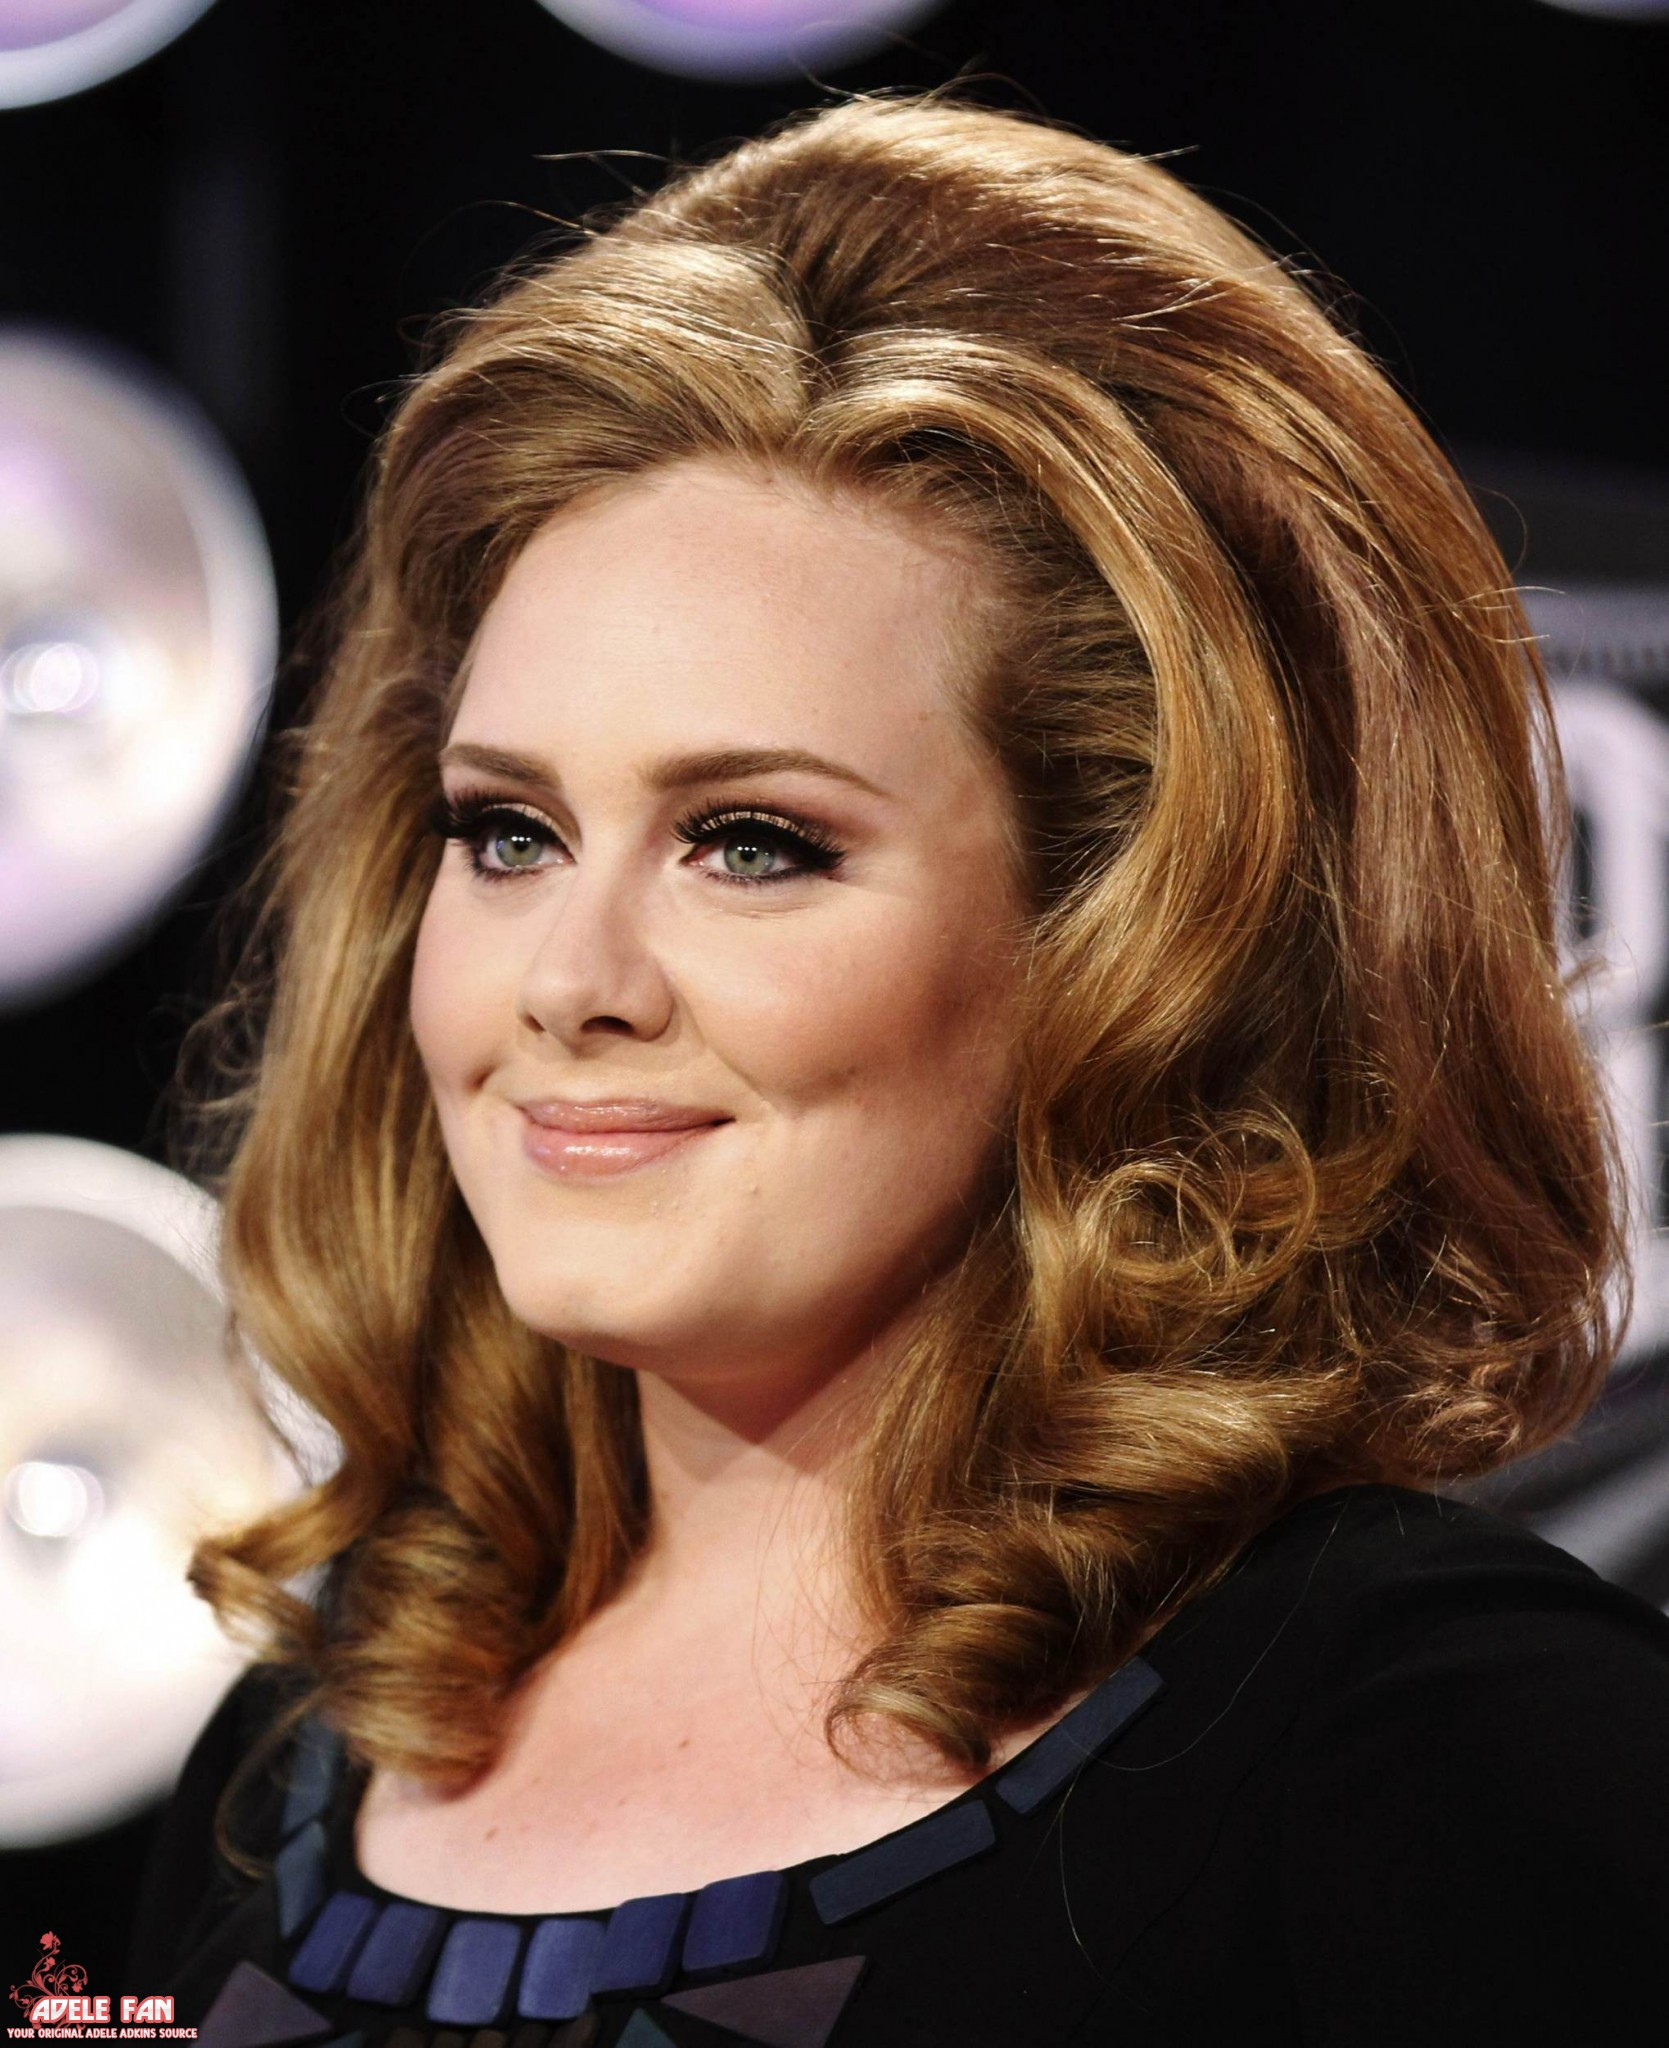 Adele Mtv Vma 2011 Adele Photo 24952608 Fanpop